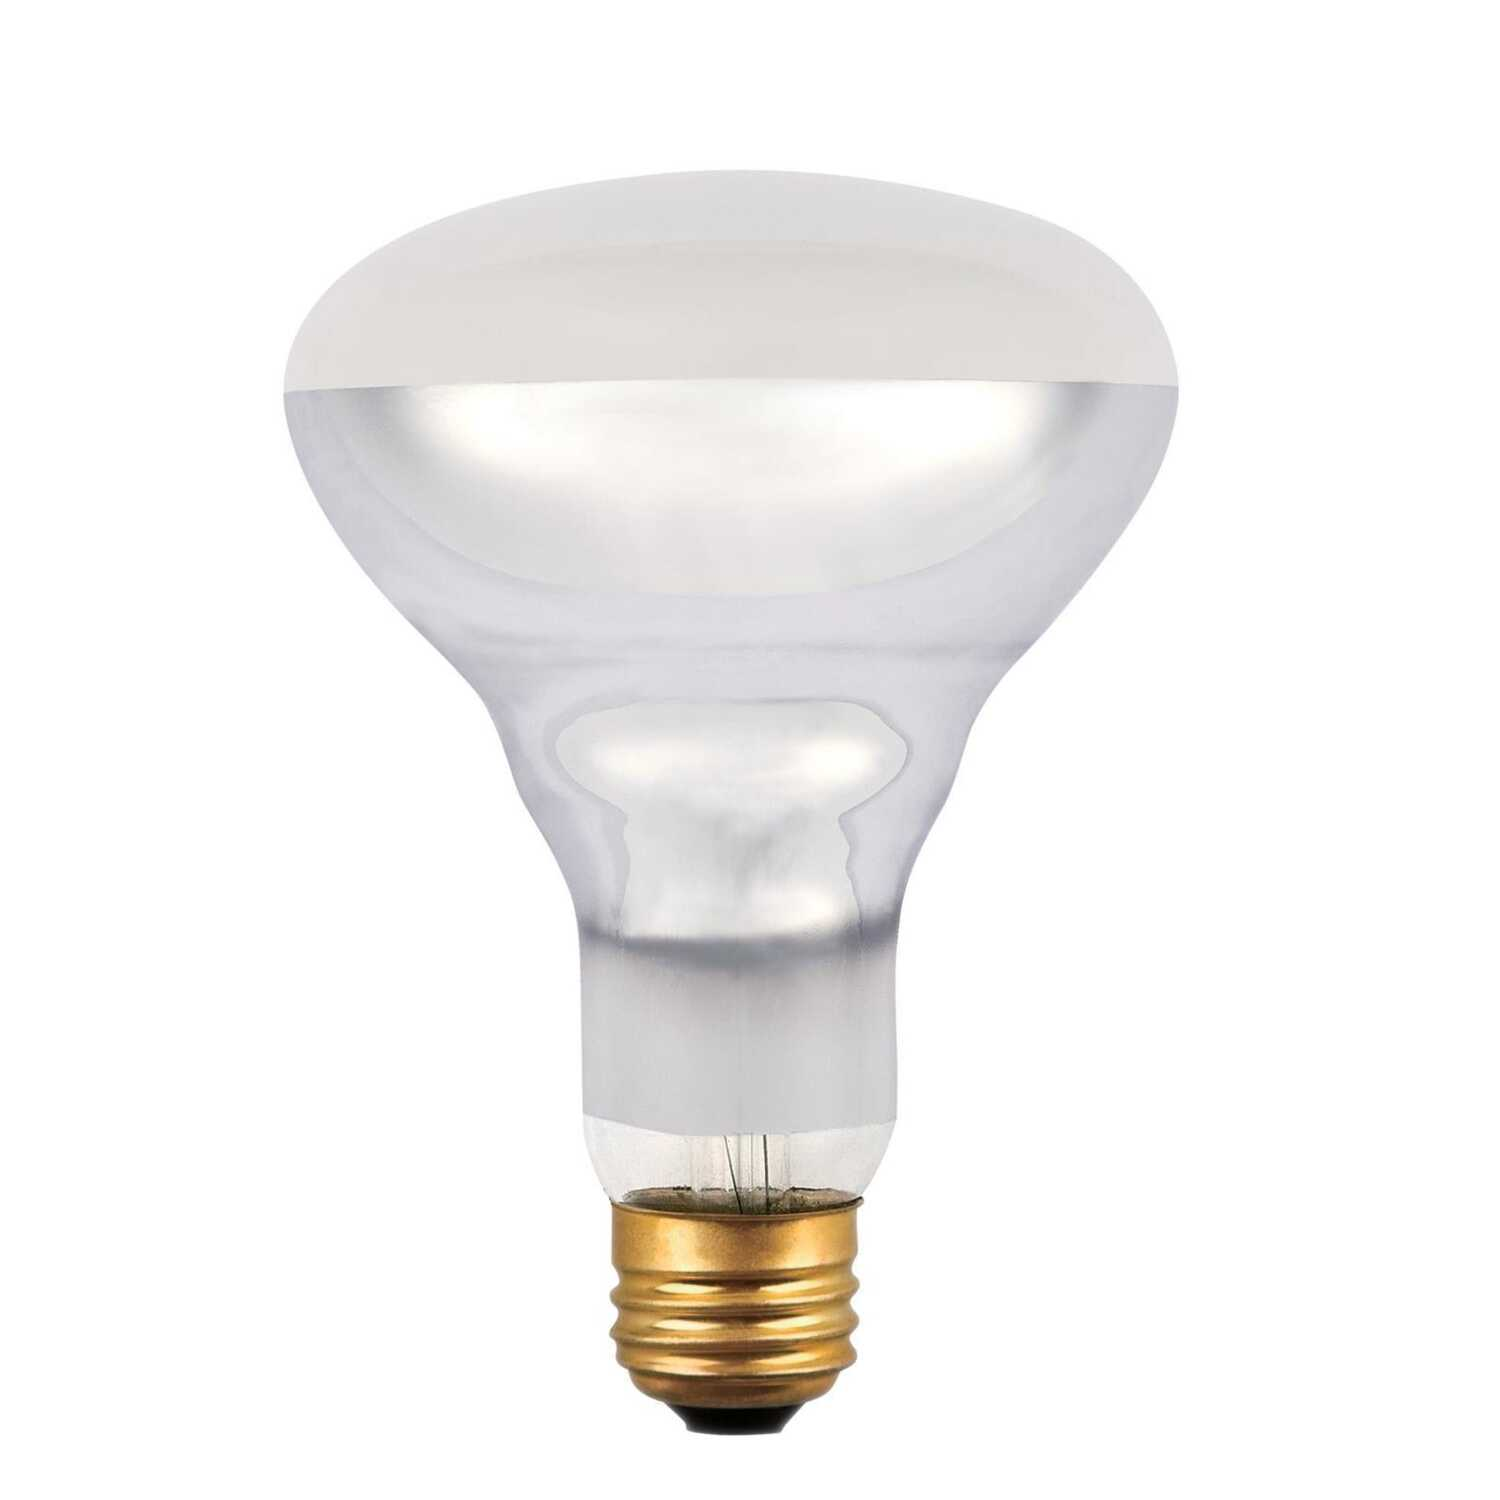 Westinghouse  65 watts BR30  Floodlight  Incandescent Bulb  E26 (Medium)  White  1 pk